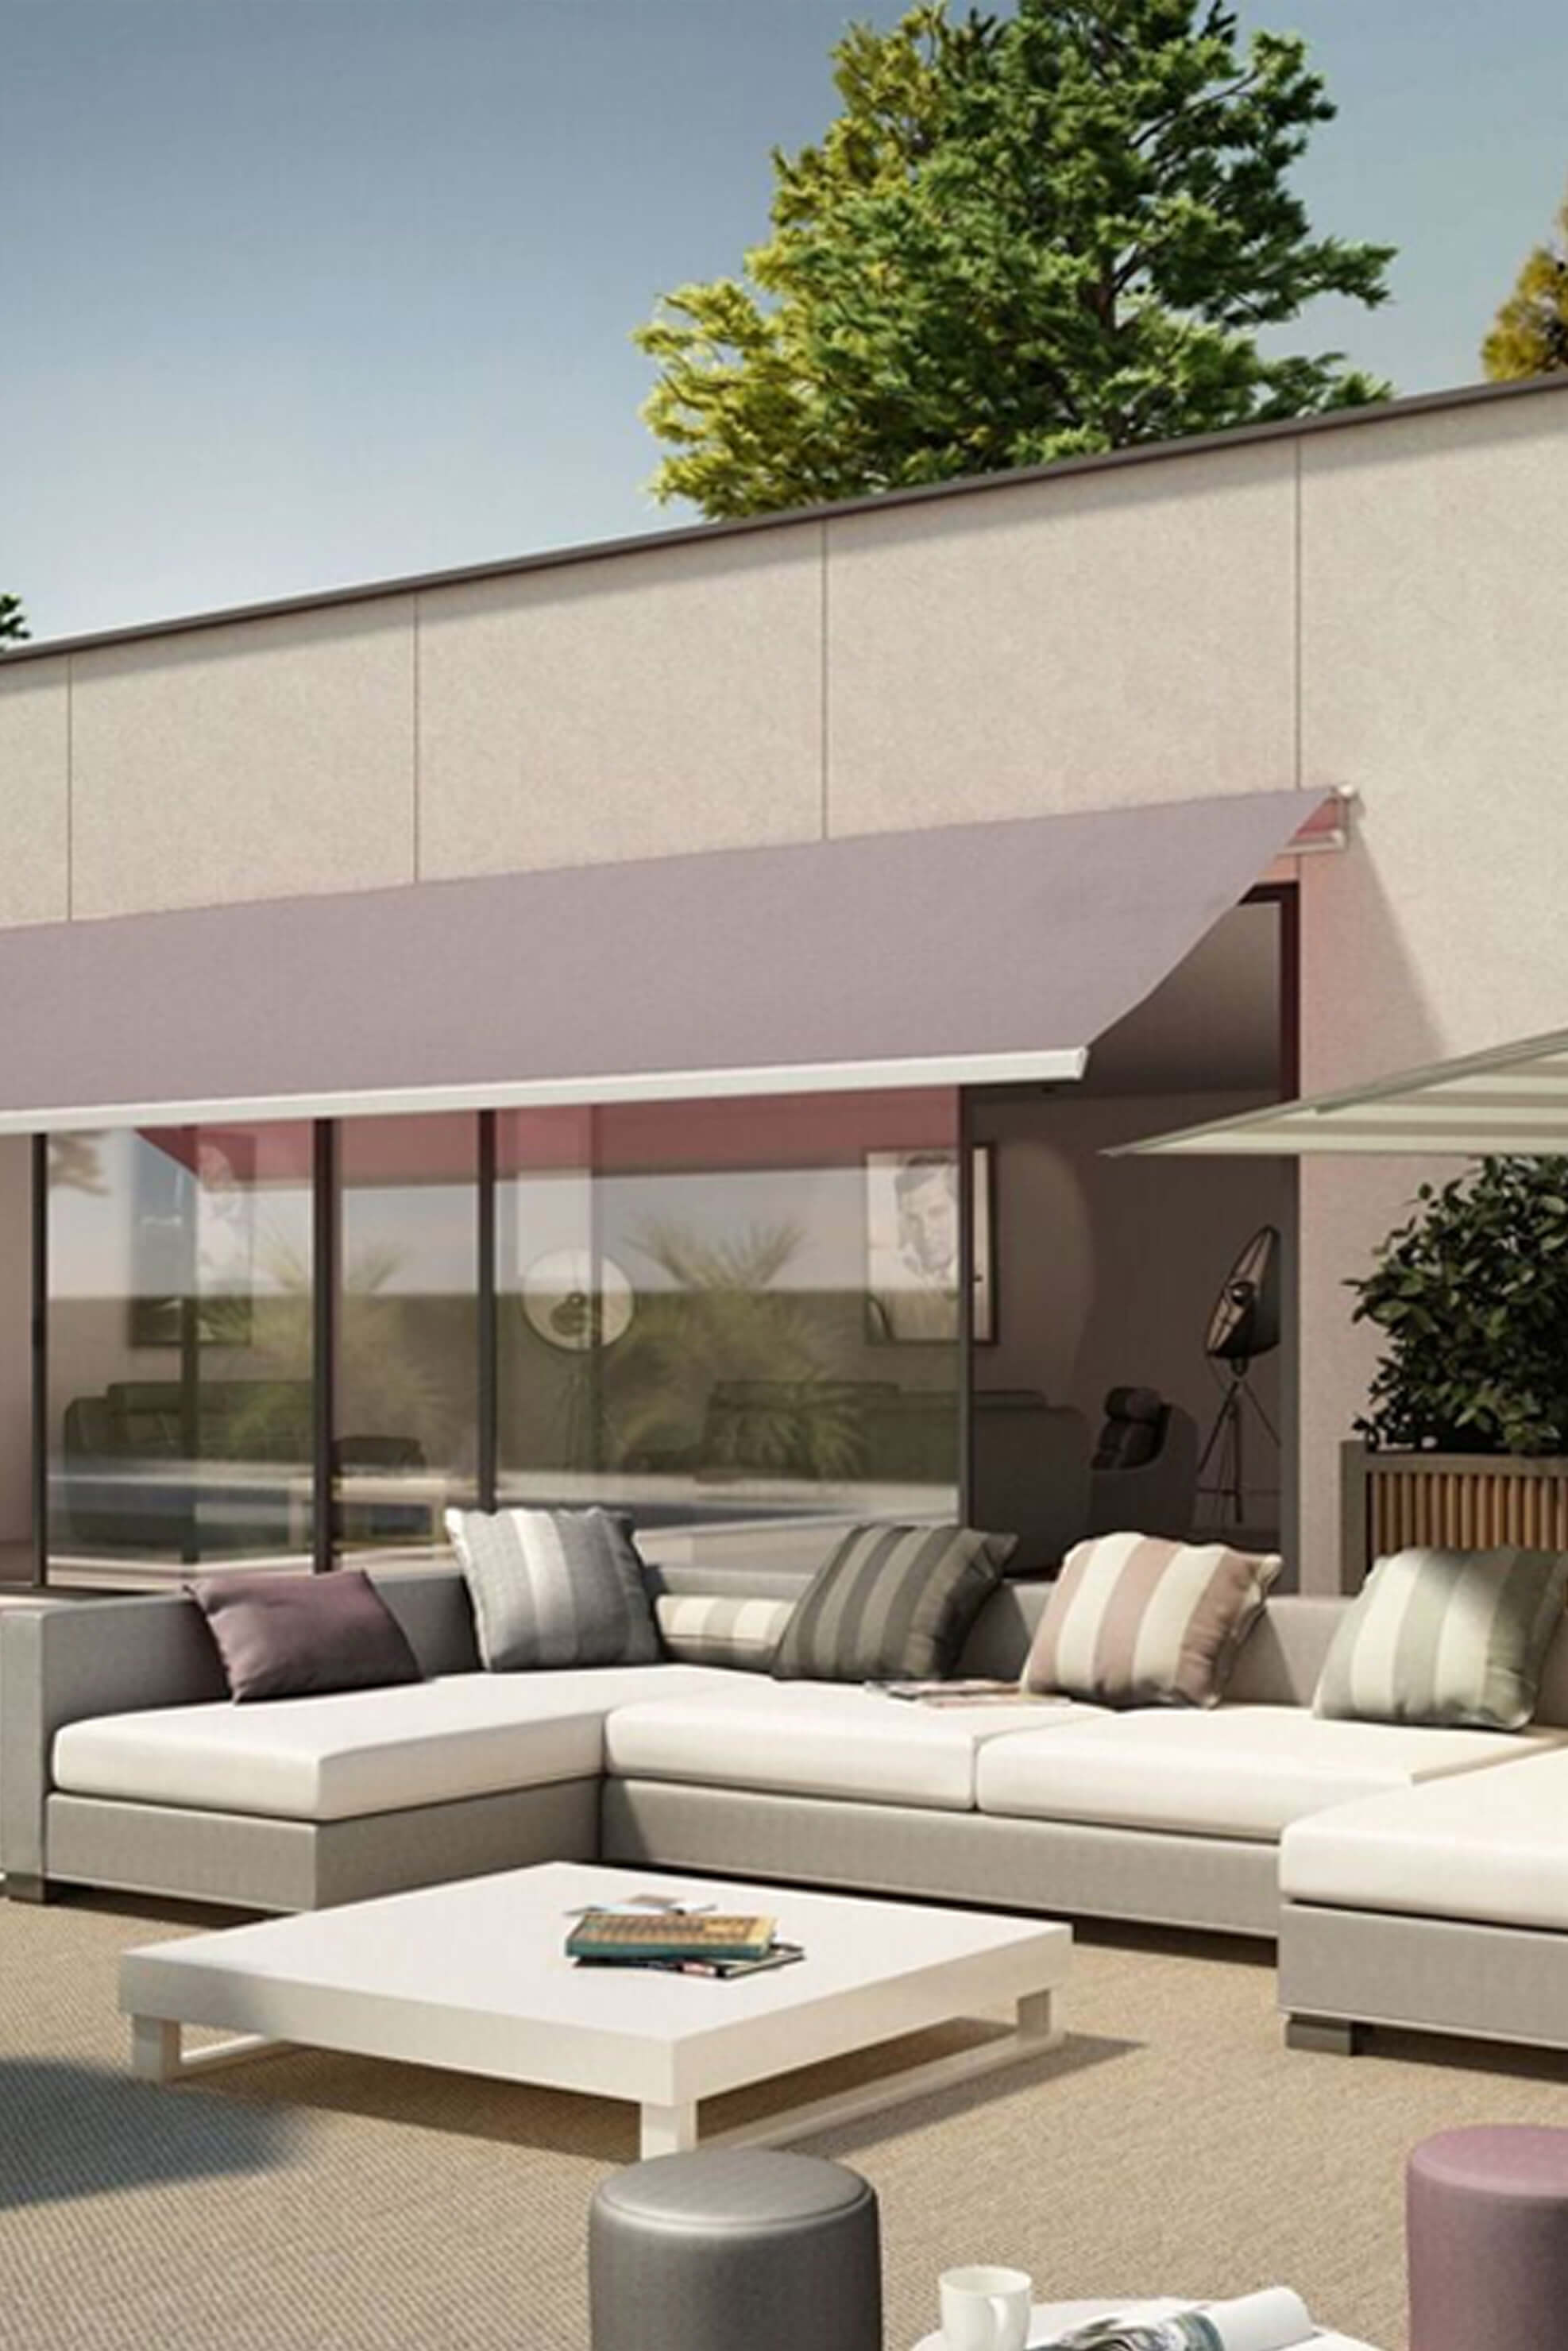 Patio Furniture Shaded By Retractable Awning Made Using Sunbrella Fabrics